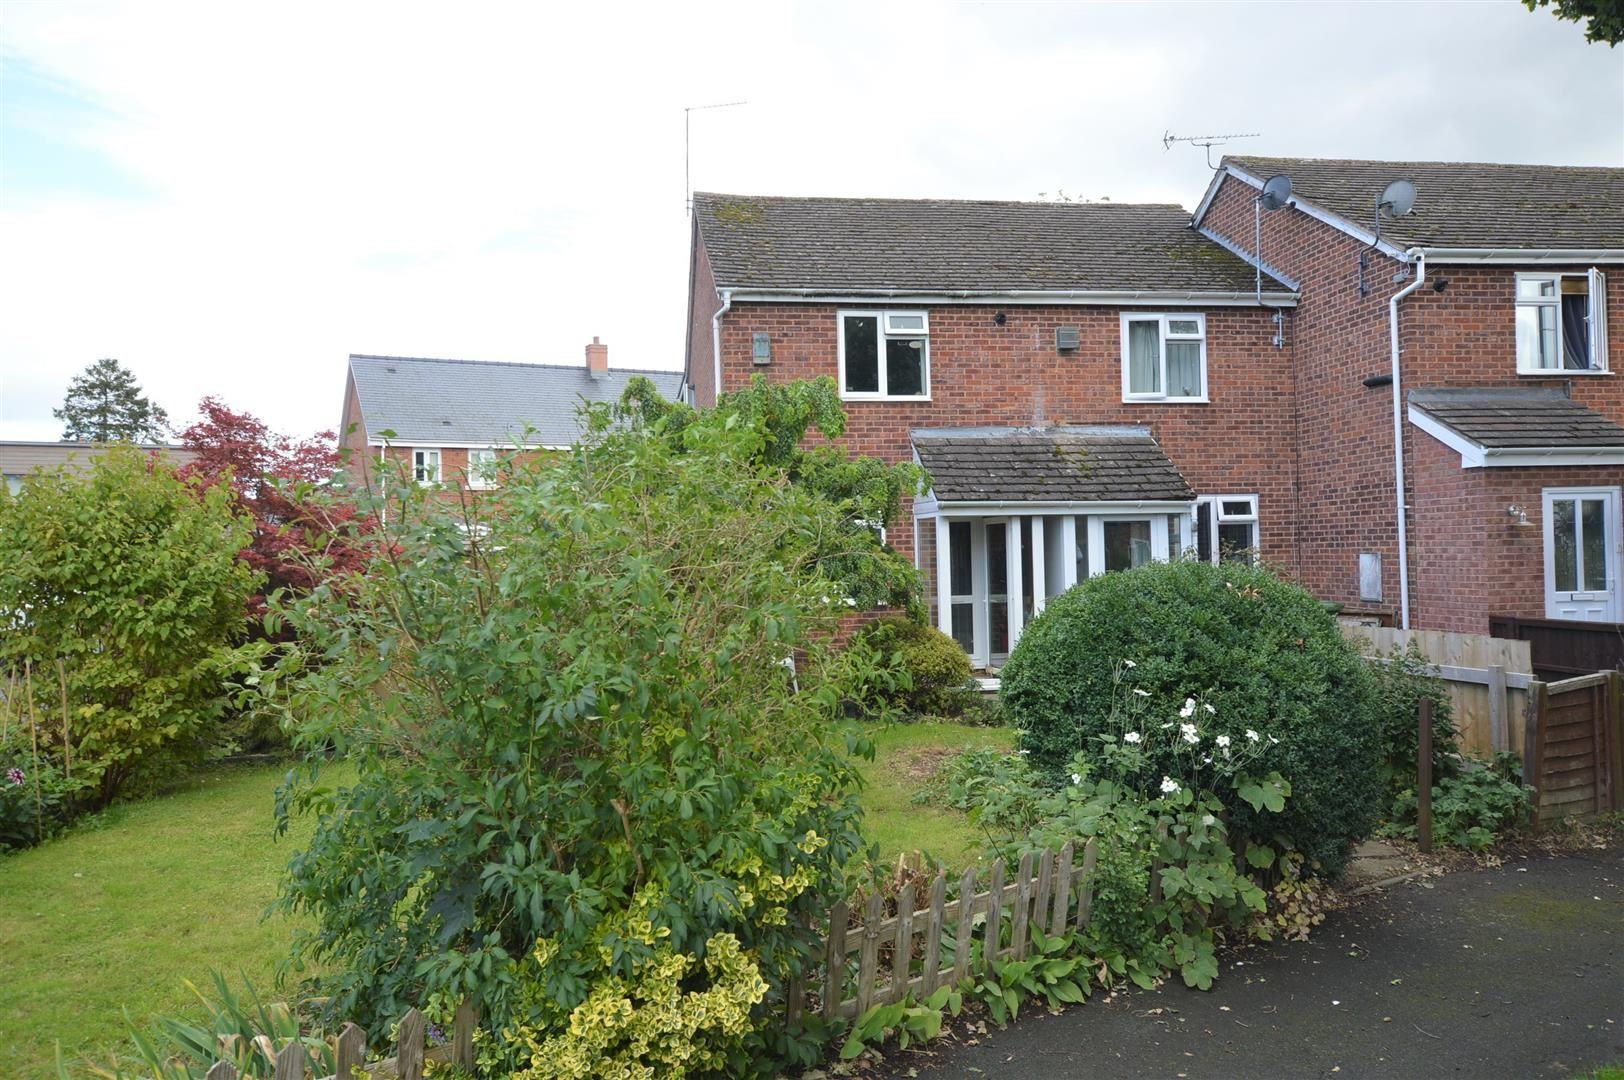 2 bed end of terrace for sale in Leominster 1